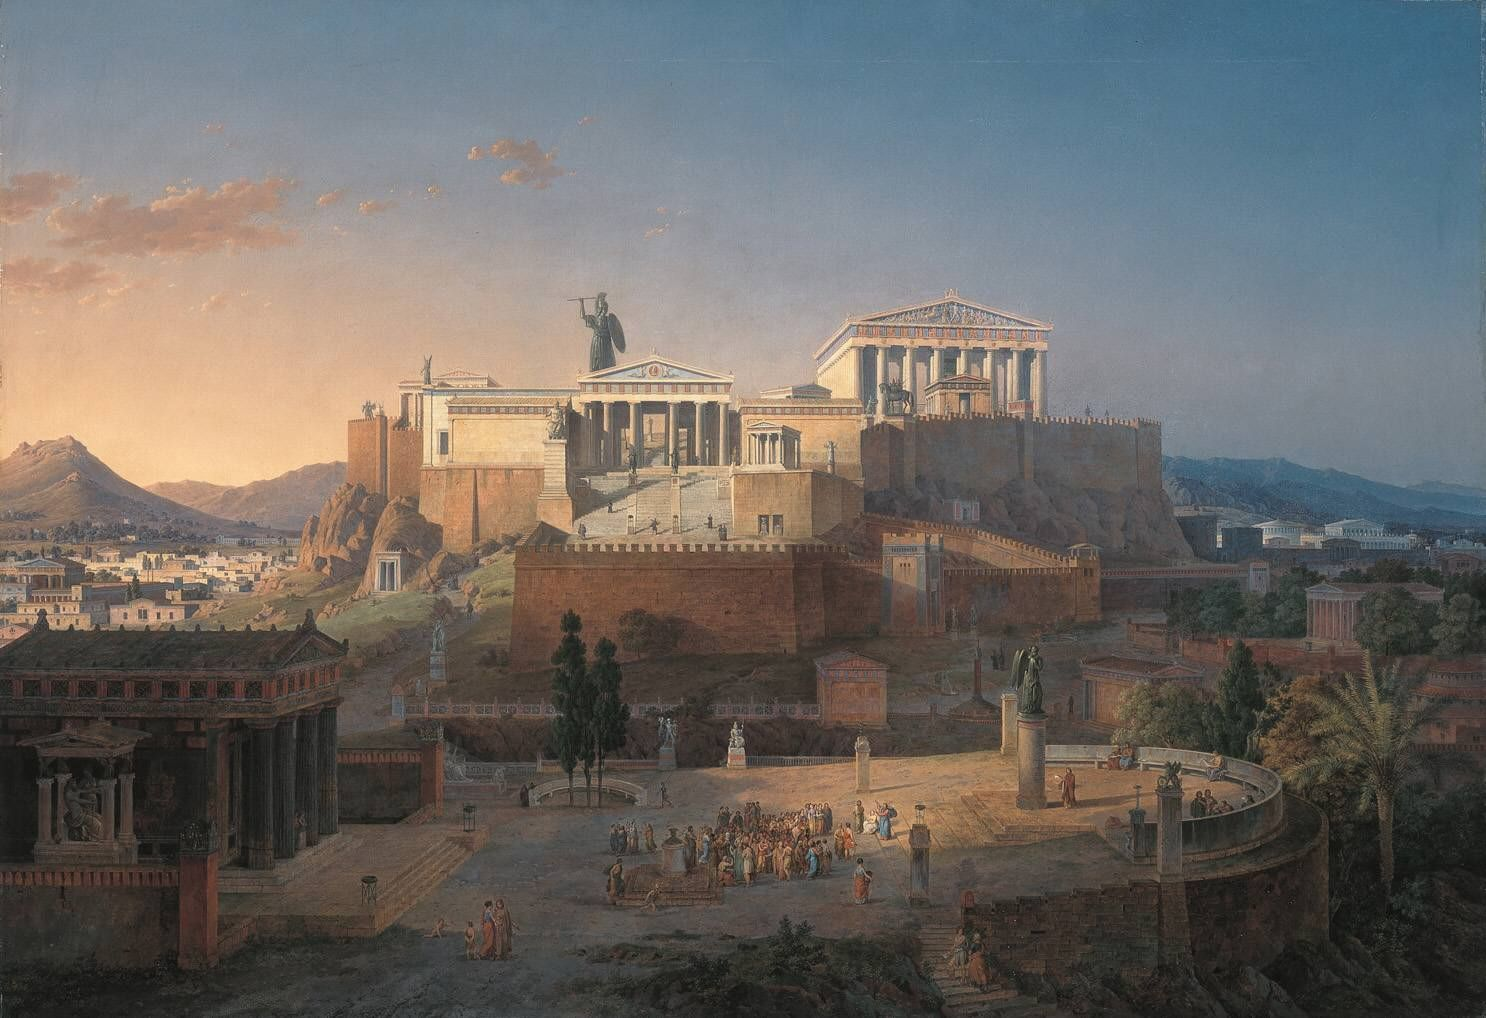 The Acropolis of Athens  by Leo von Klenze (1846).